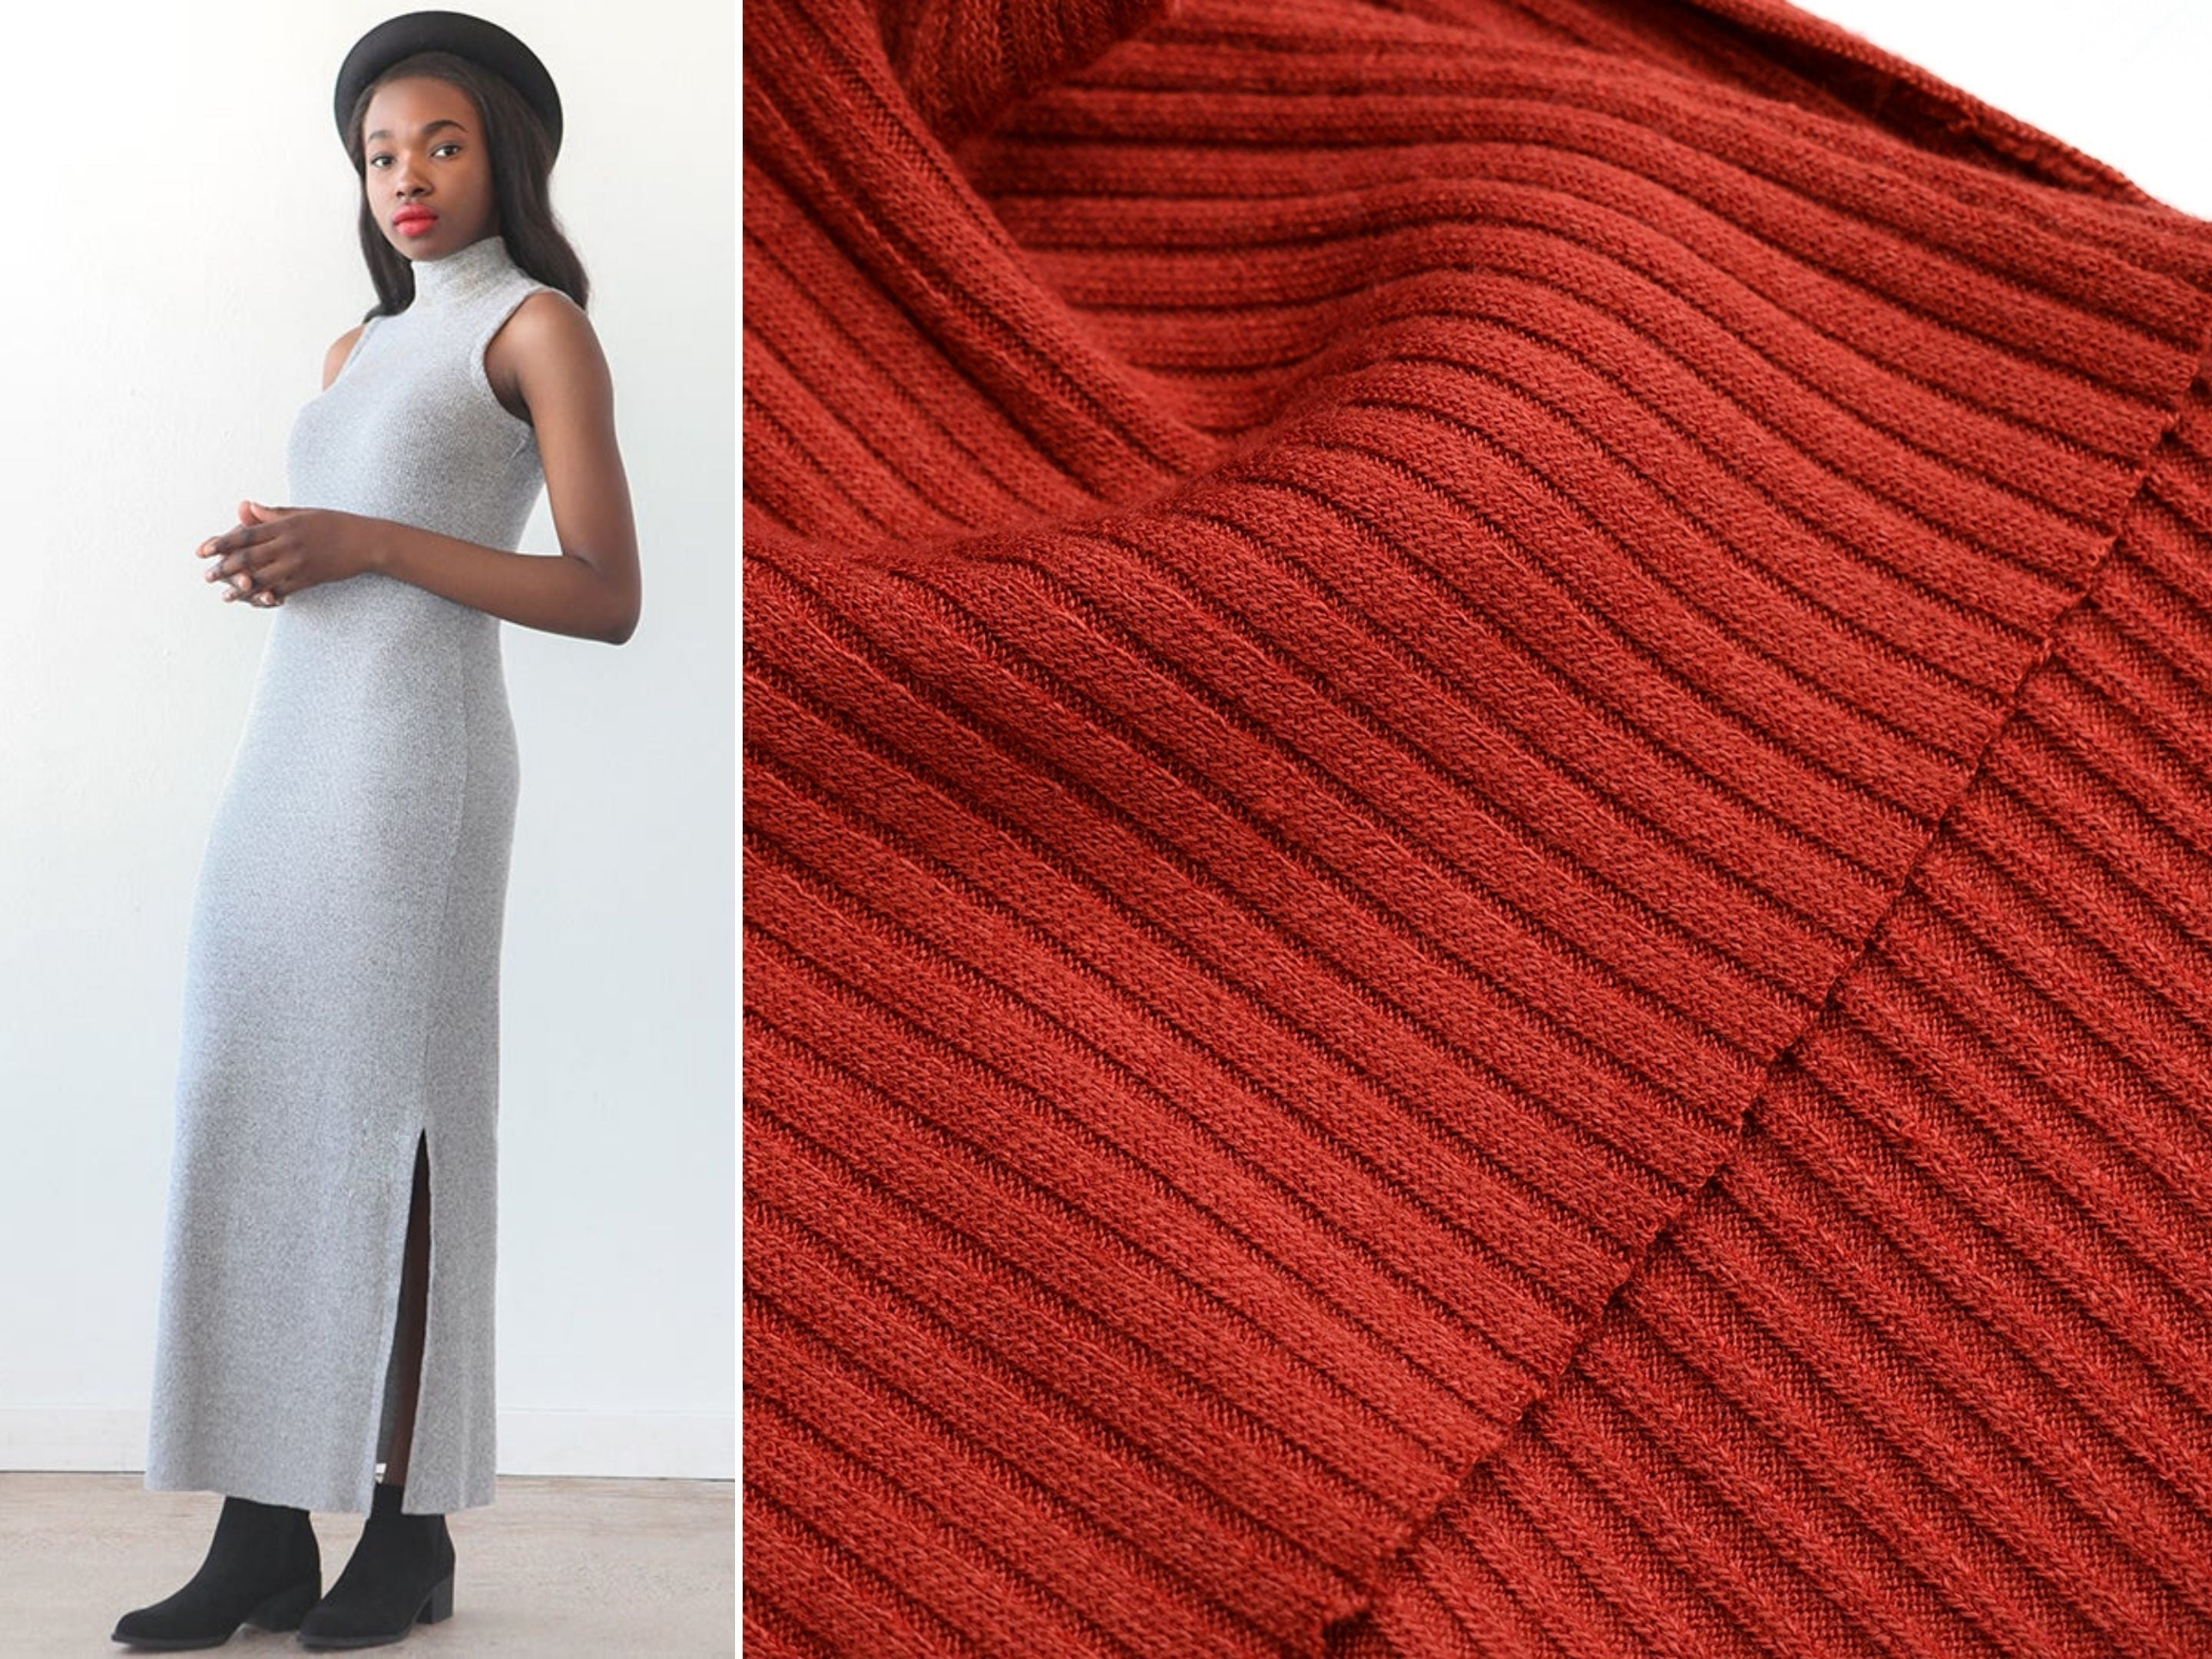 A close up look at a 4x2 rib knit fabric and a suggested pattern, the True Bias Nikko Dress